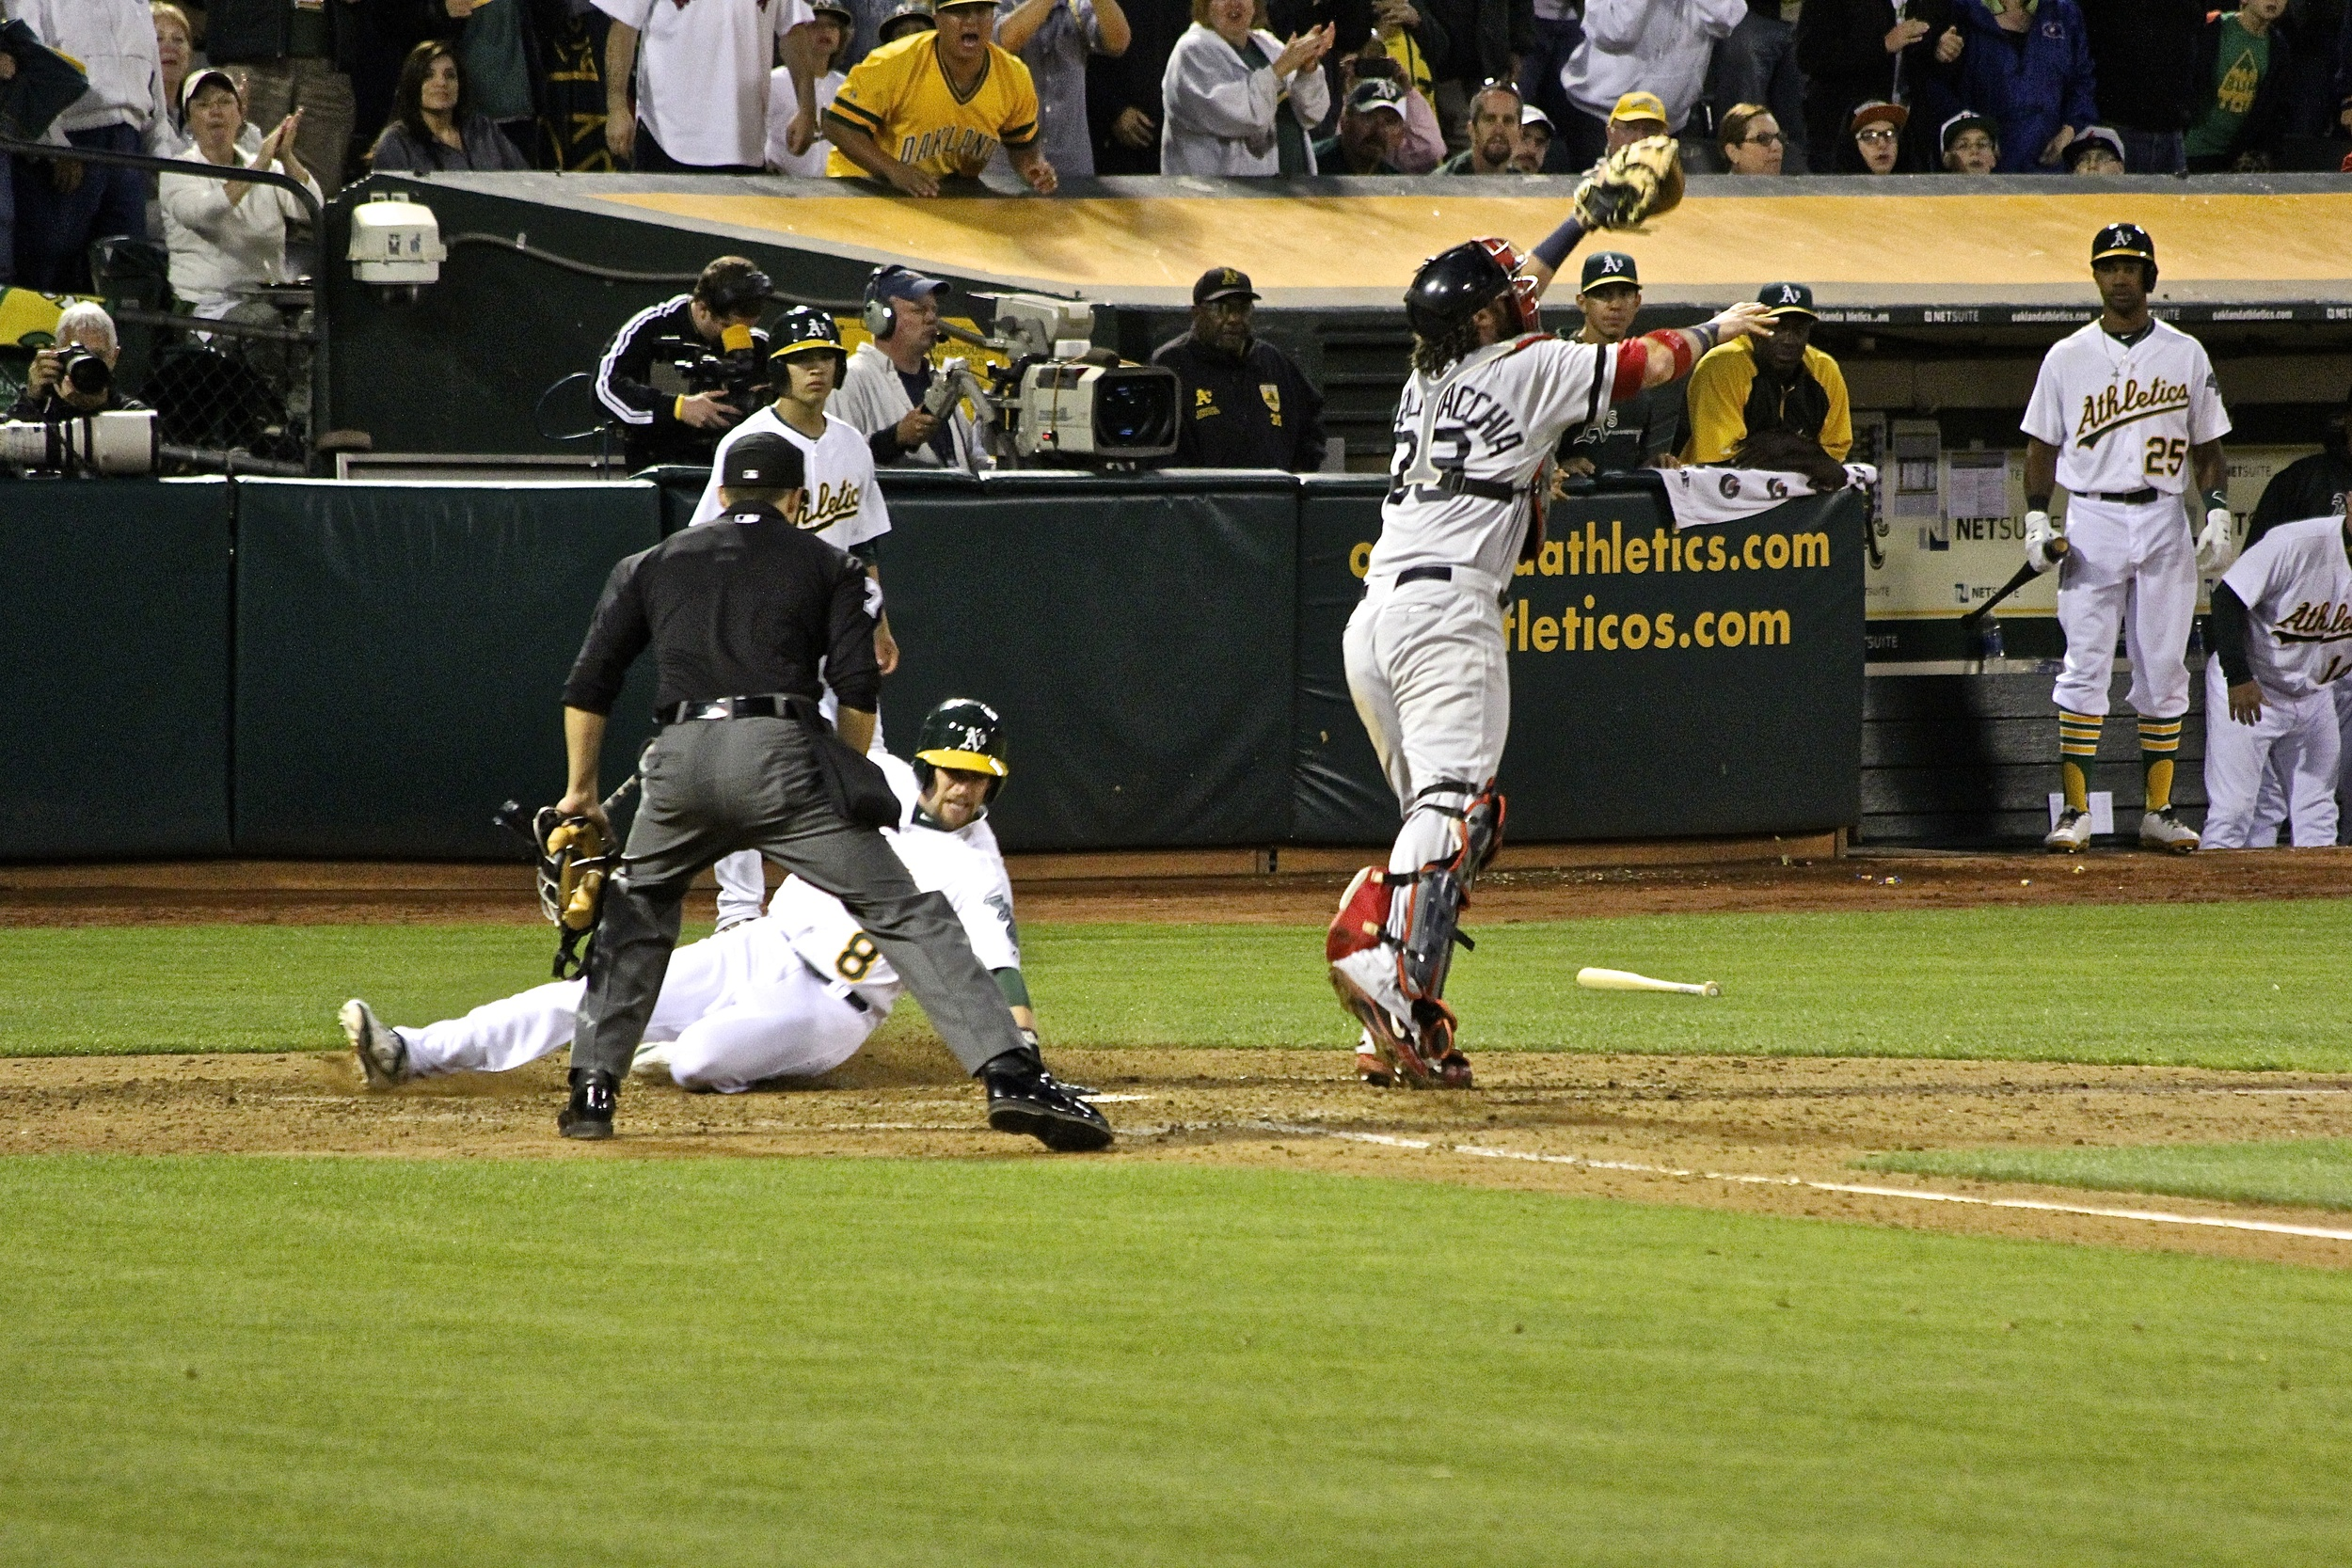 Jed Lowrie safe at home